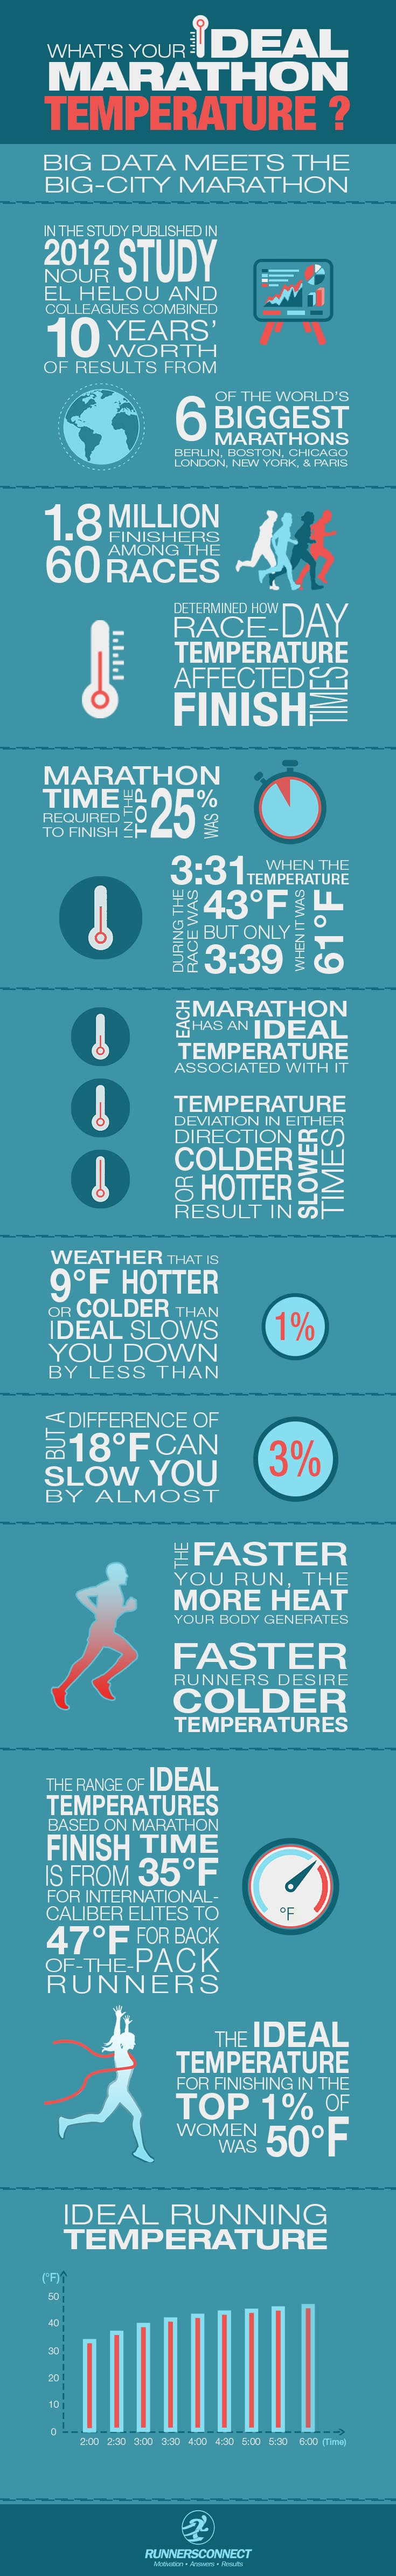 The weather on race day for the marathon can make a big difference to performance, but do you have an ideal racing temperature? We tell you what yours is!